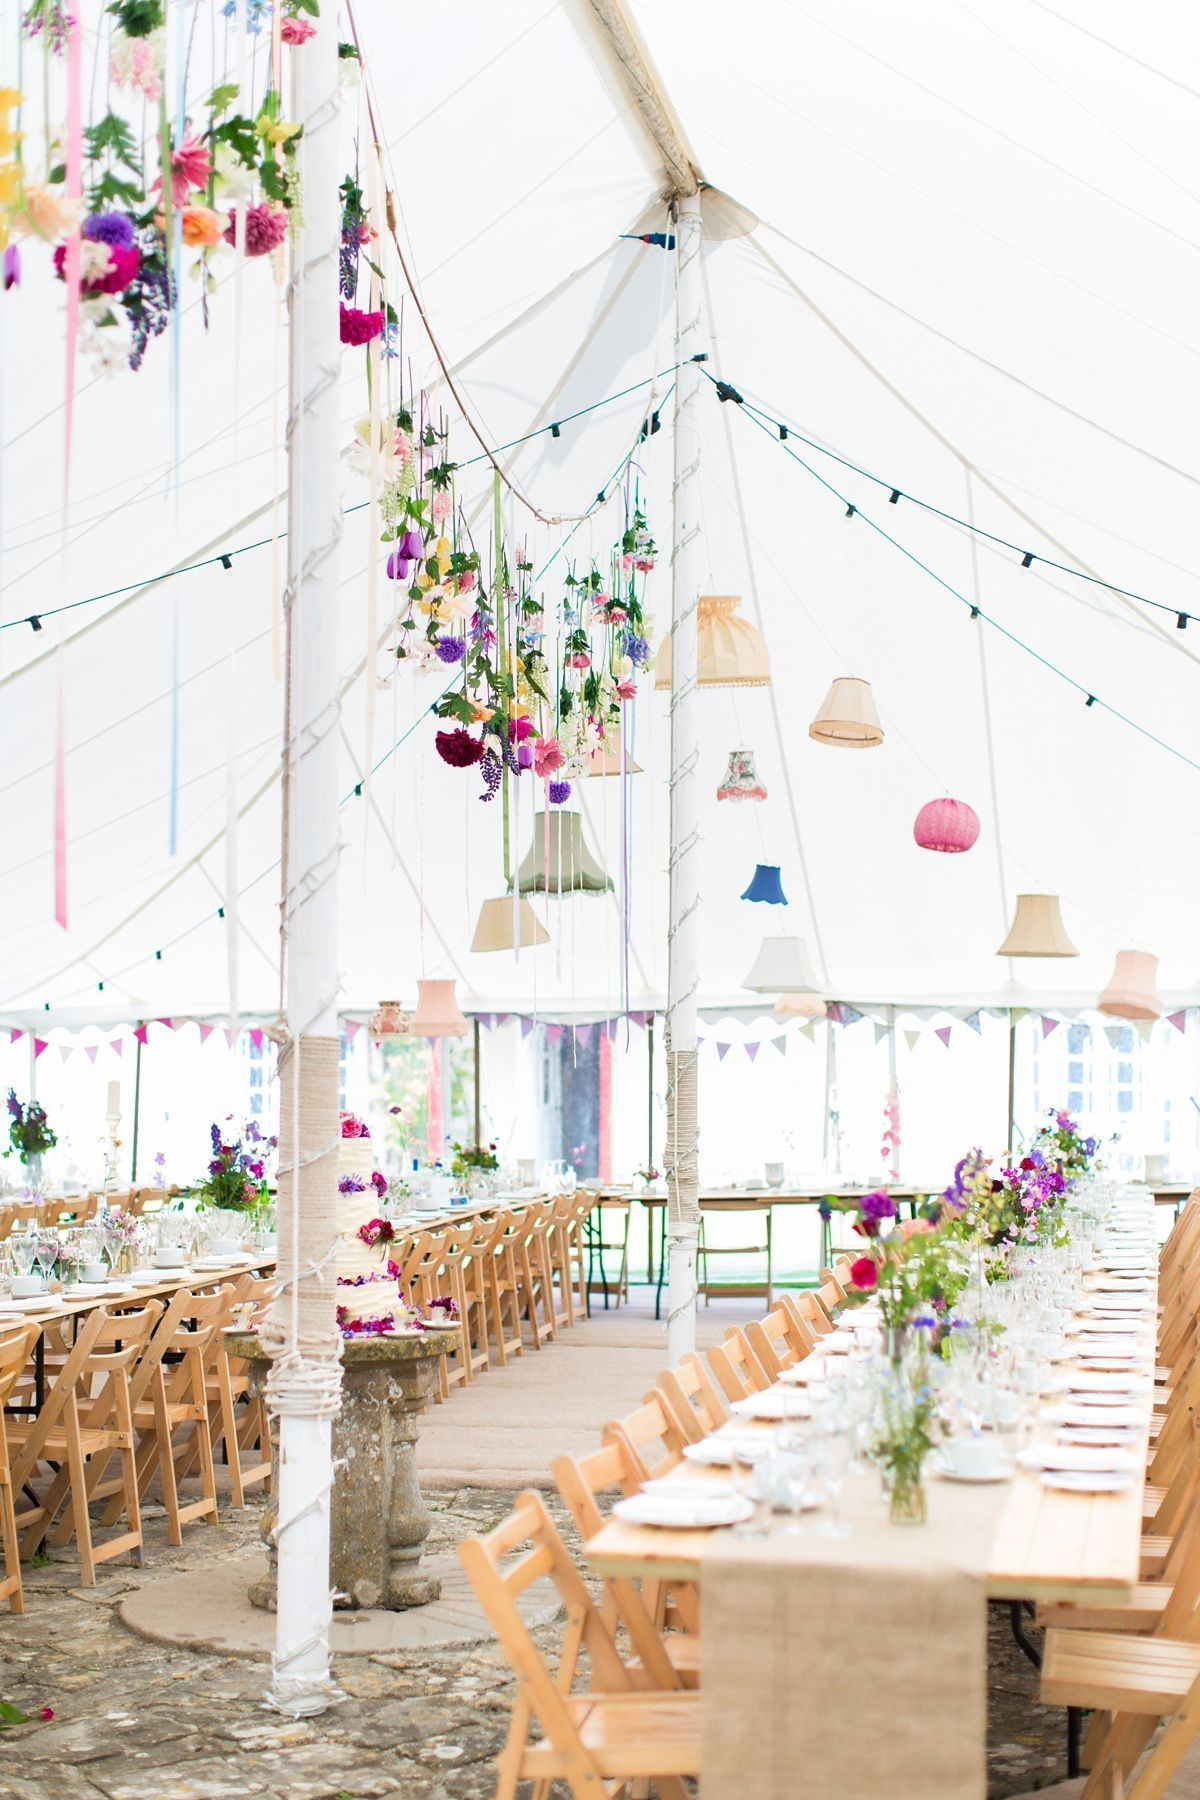 An Essense of Australia Gown and Flower-Filled Village Wedding -  Trestle tables decorated with fresh garden flowers. Photographer – Kerry Bartlett Photography  - #